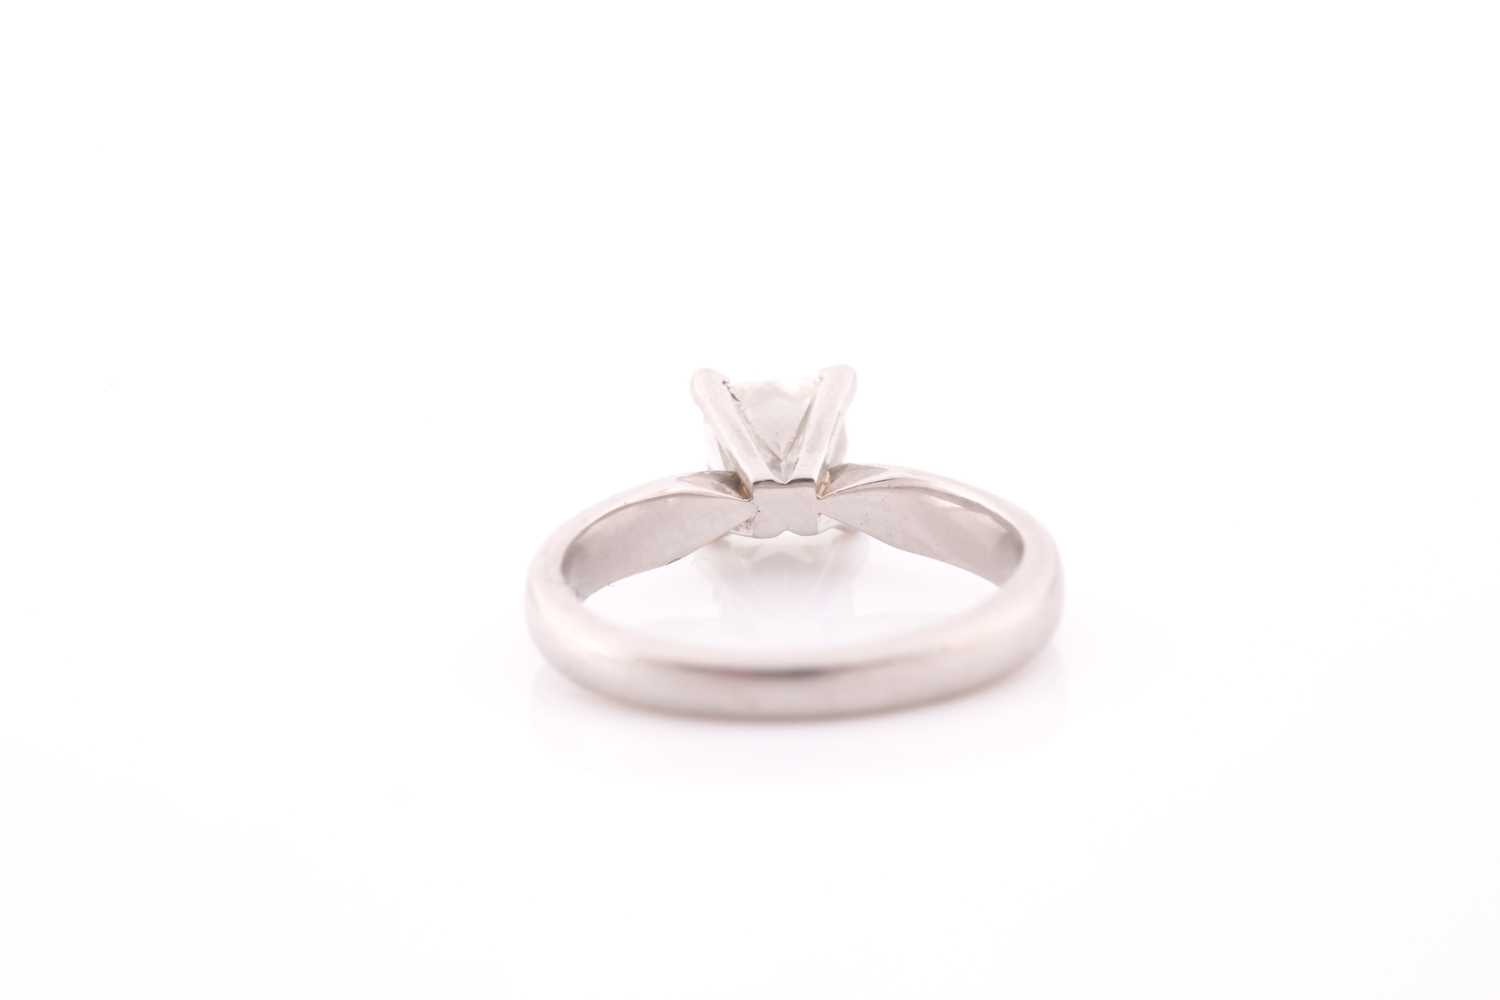 A platinum and diamond ring, set with a princess-cut diamond of approximately 0.80 carats, - Image 2 of 4